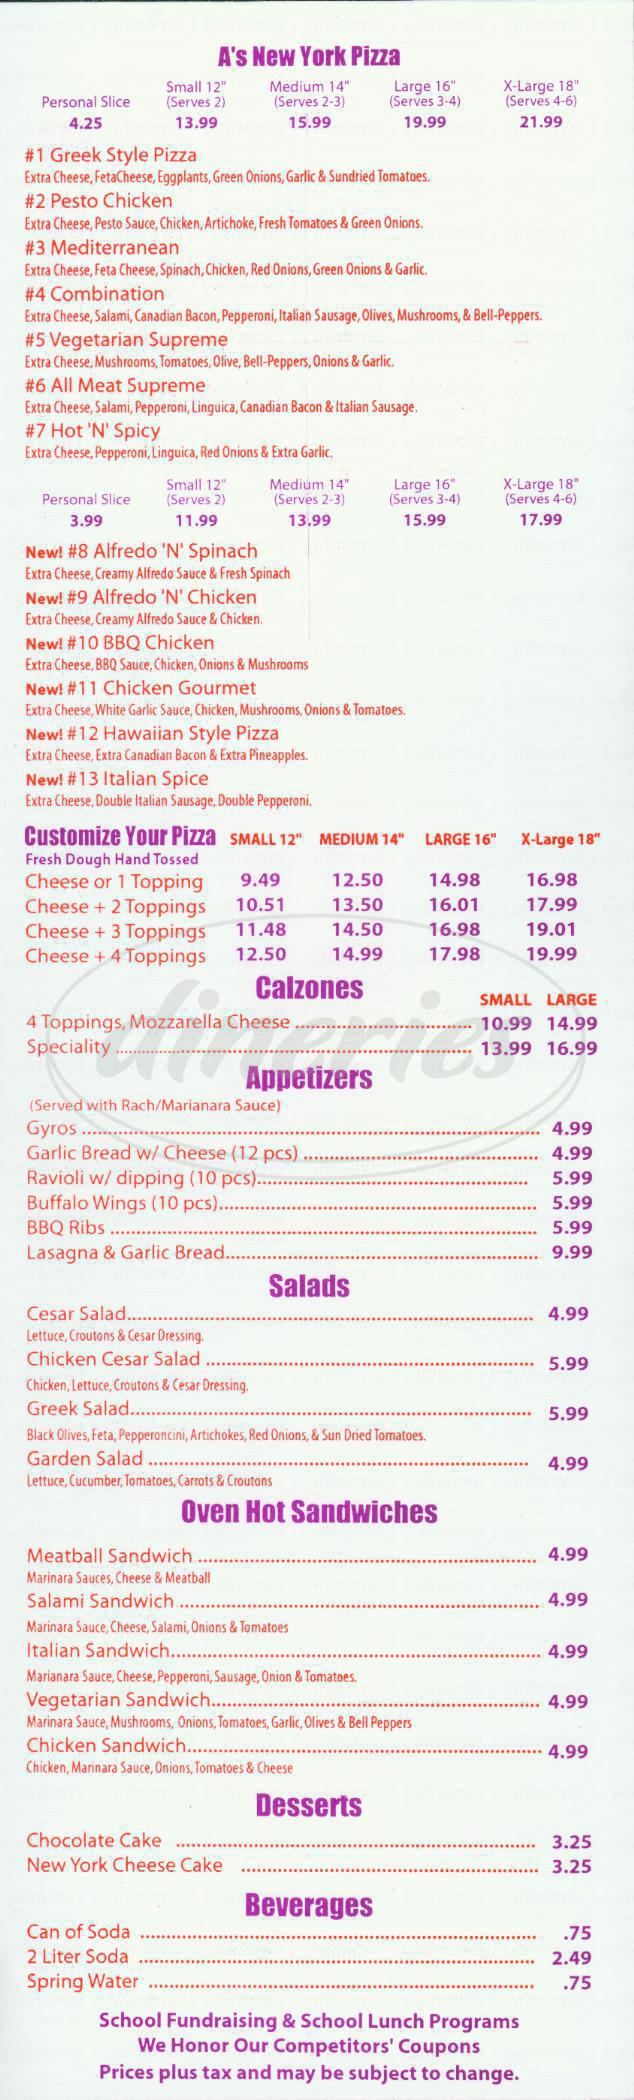 menu for A's New York Pizza